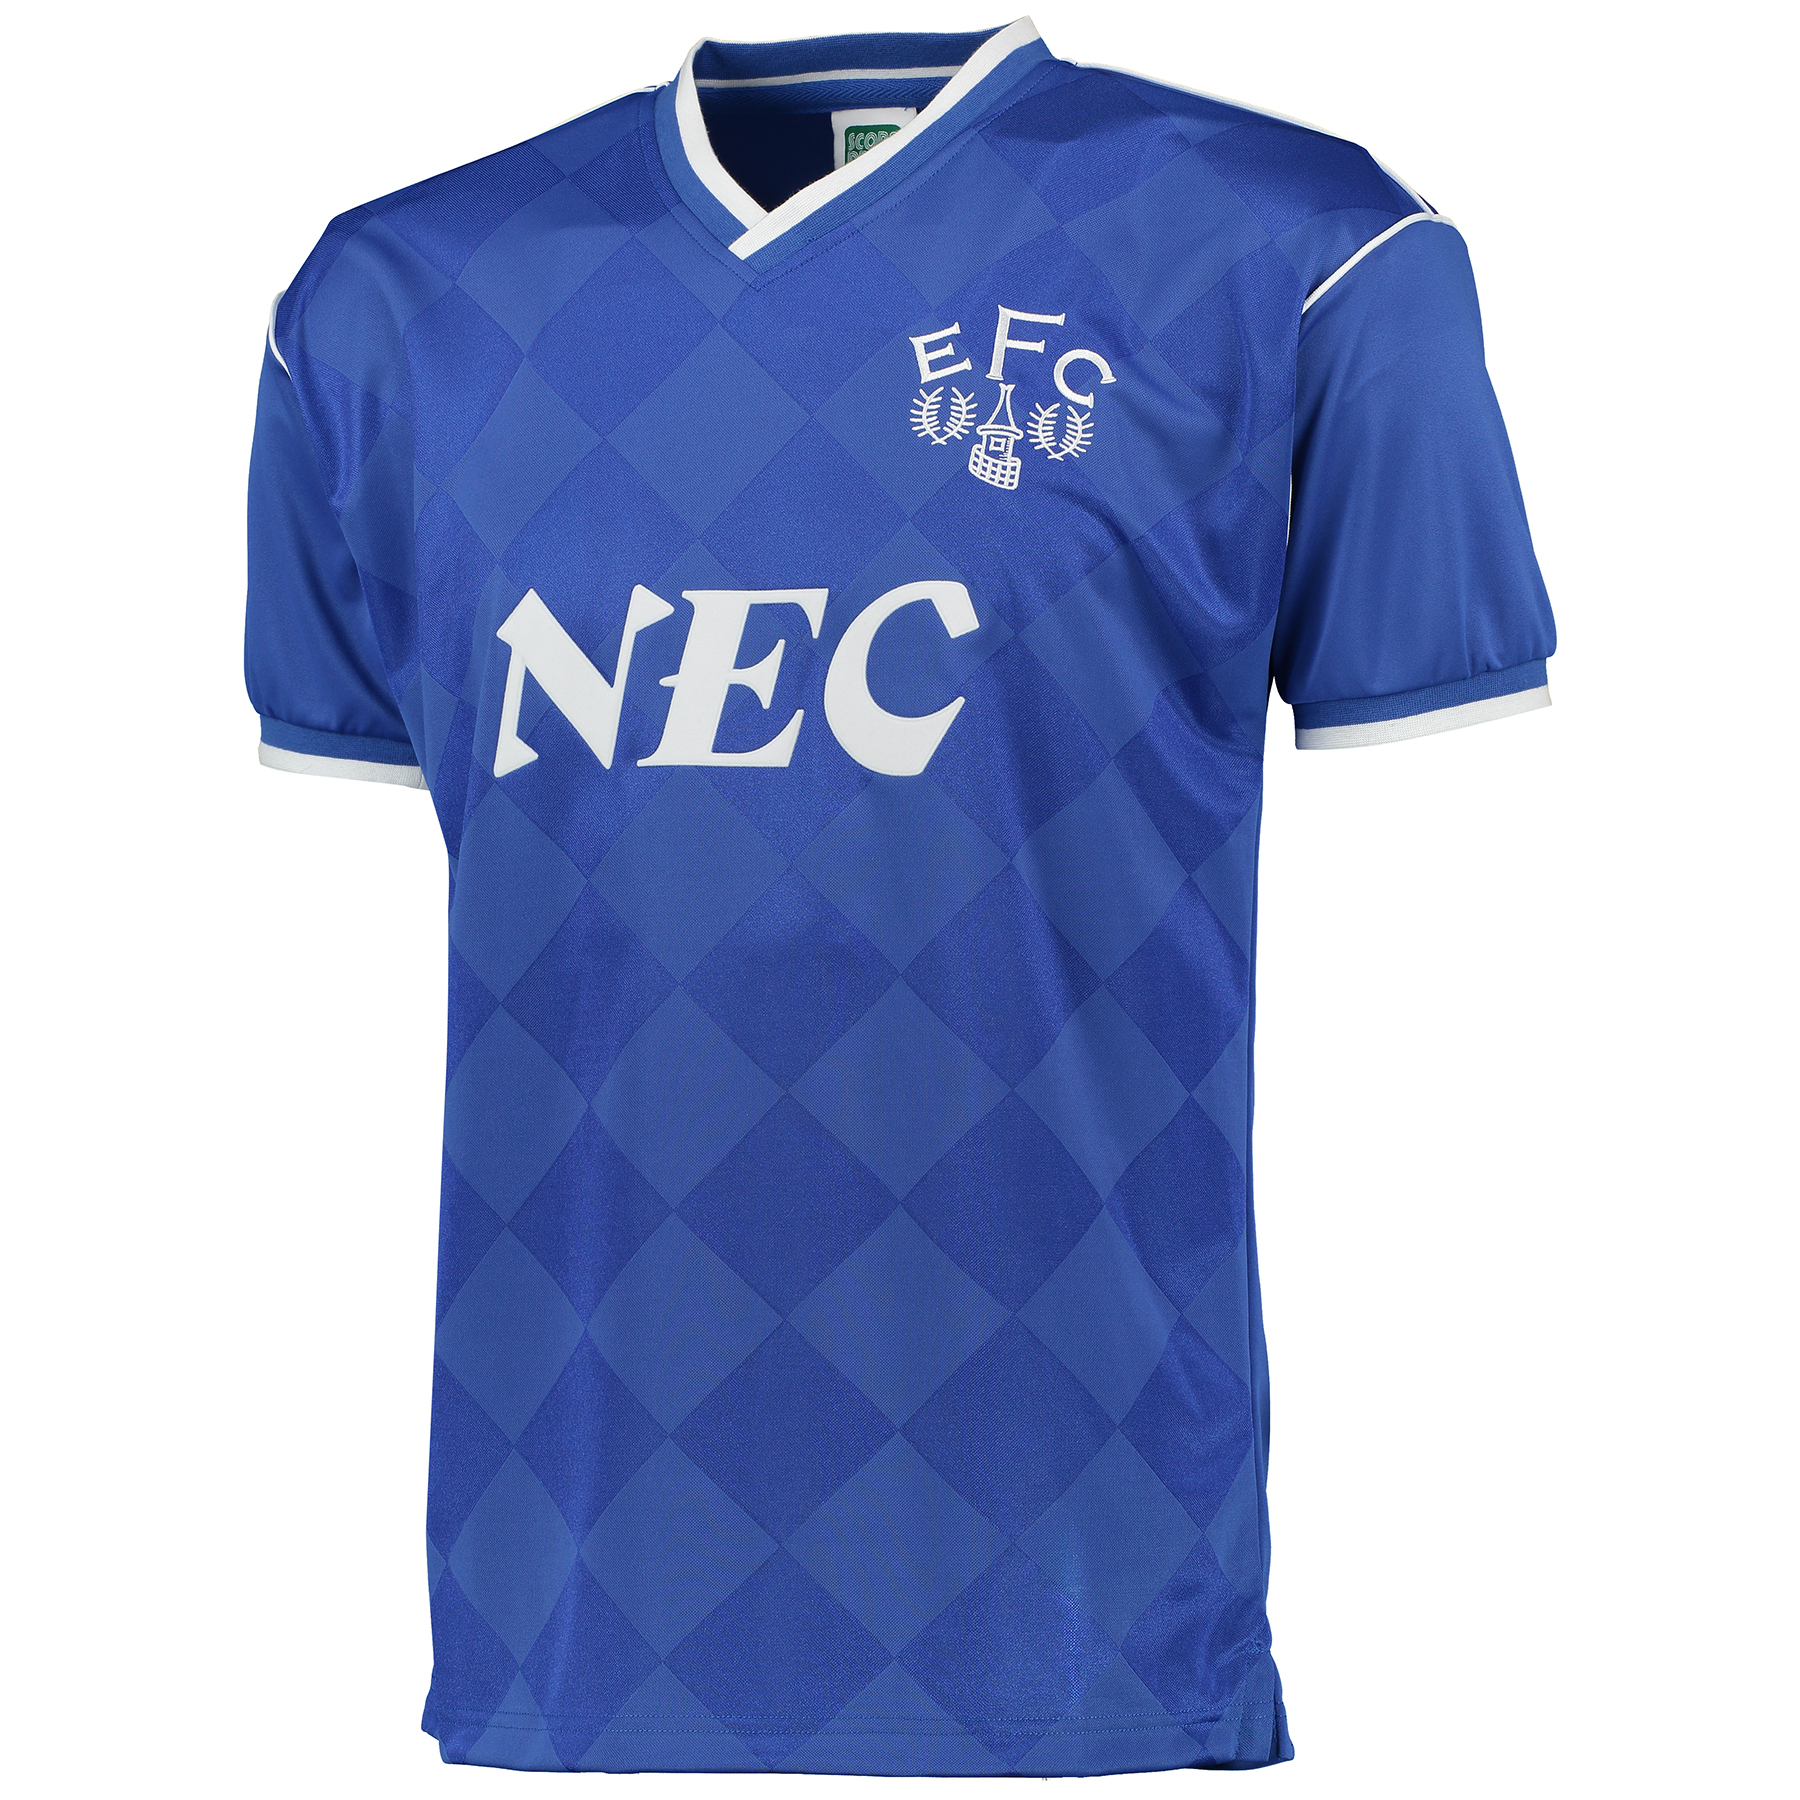 Everton 1987 League Champions Shirt - Blue